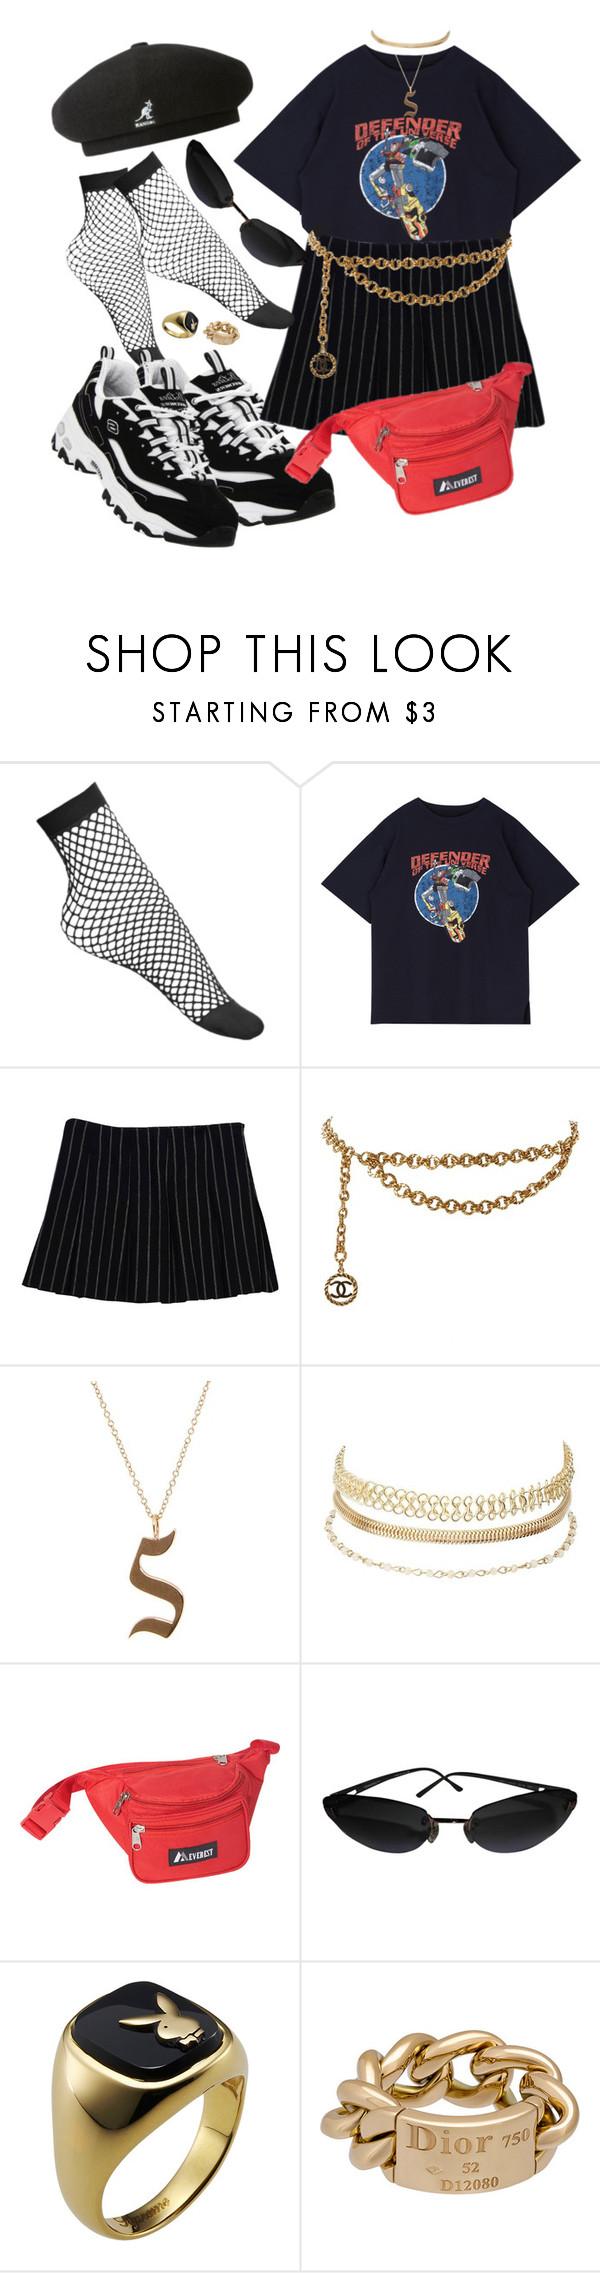 """""""Untitled #429"""" by youraveragestyle ❤ liked on Polyvore featuring Lamoda, Theory, Chanel, Luna Skye, Charlotte Russe, Everest, Christian Dior and kangol"""